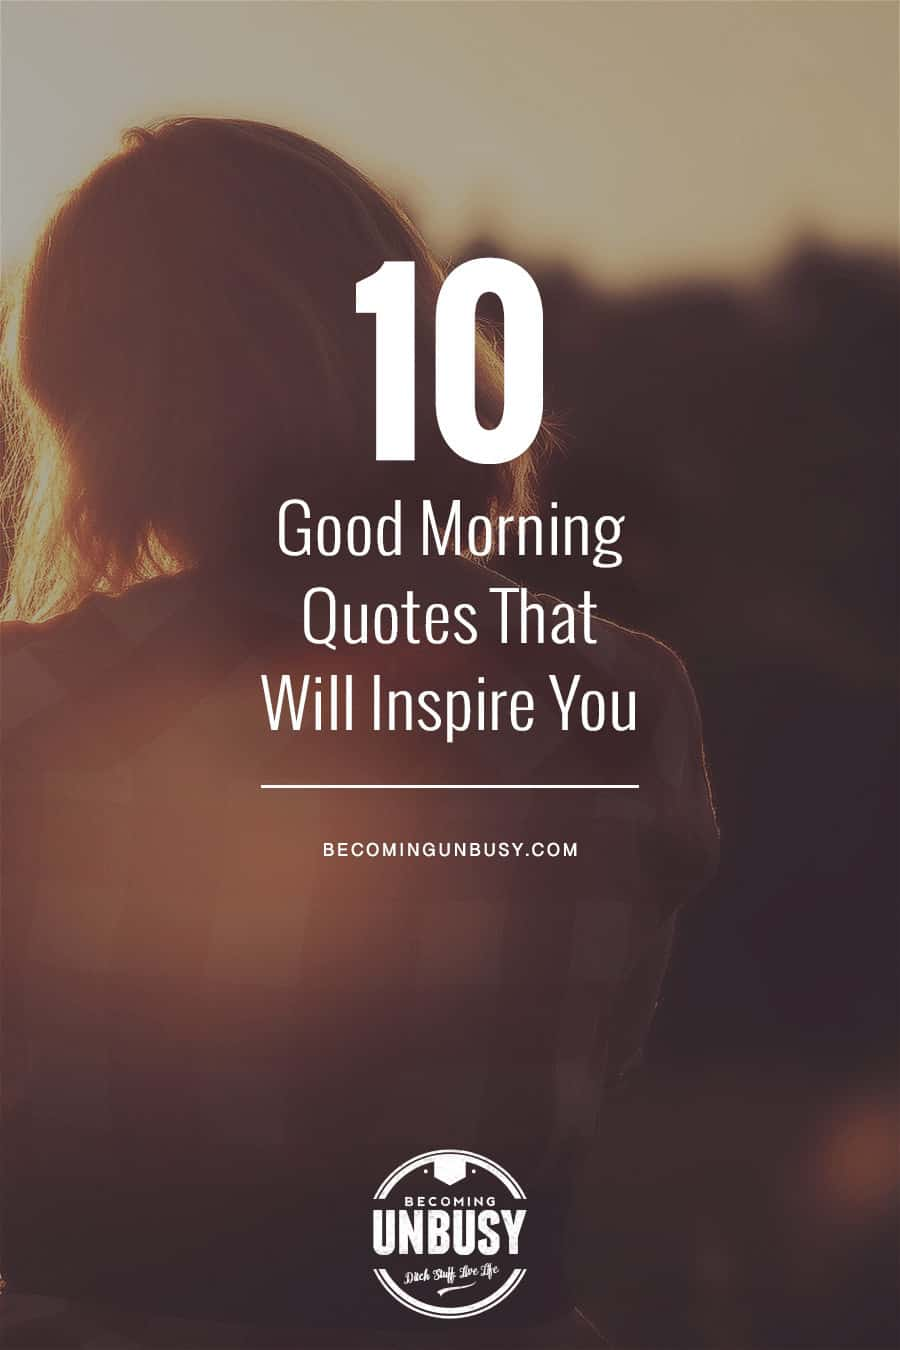 10 Good Morning Quotes #lifequotes #quotes #goodmorningquotes #coffeequotes *Start the day off right with these morning inspirational quotes. Love this good morning motivation!